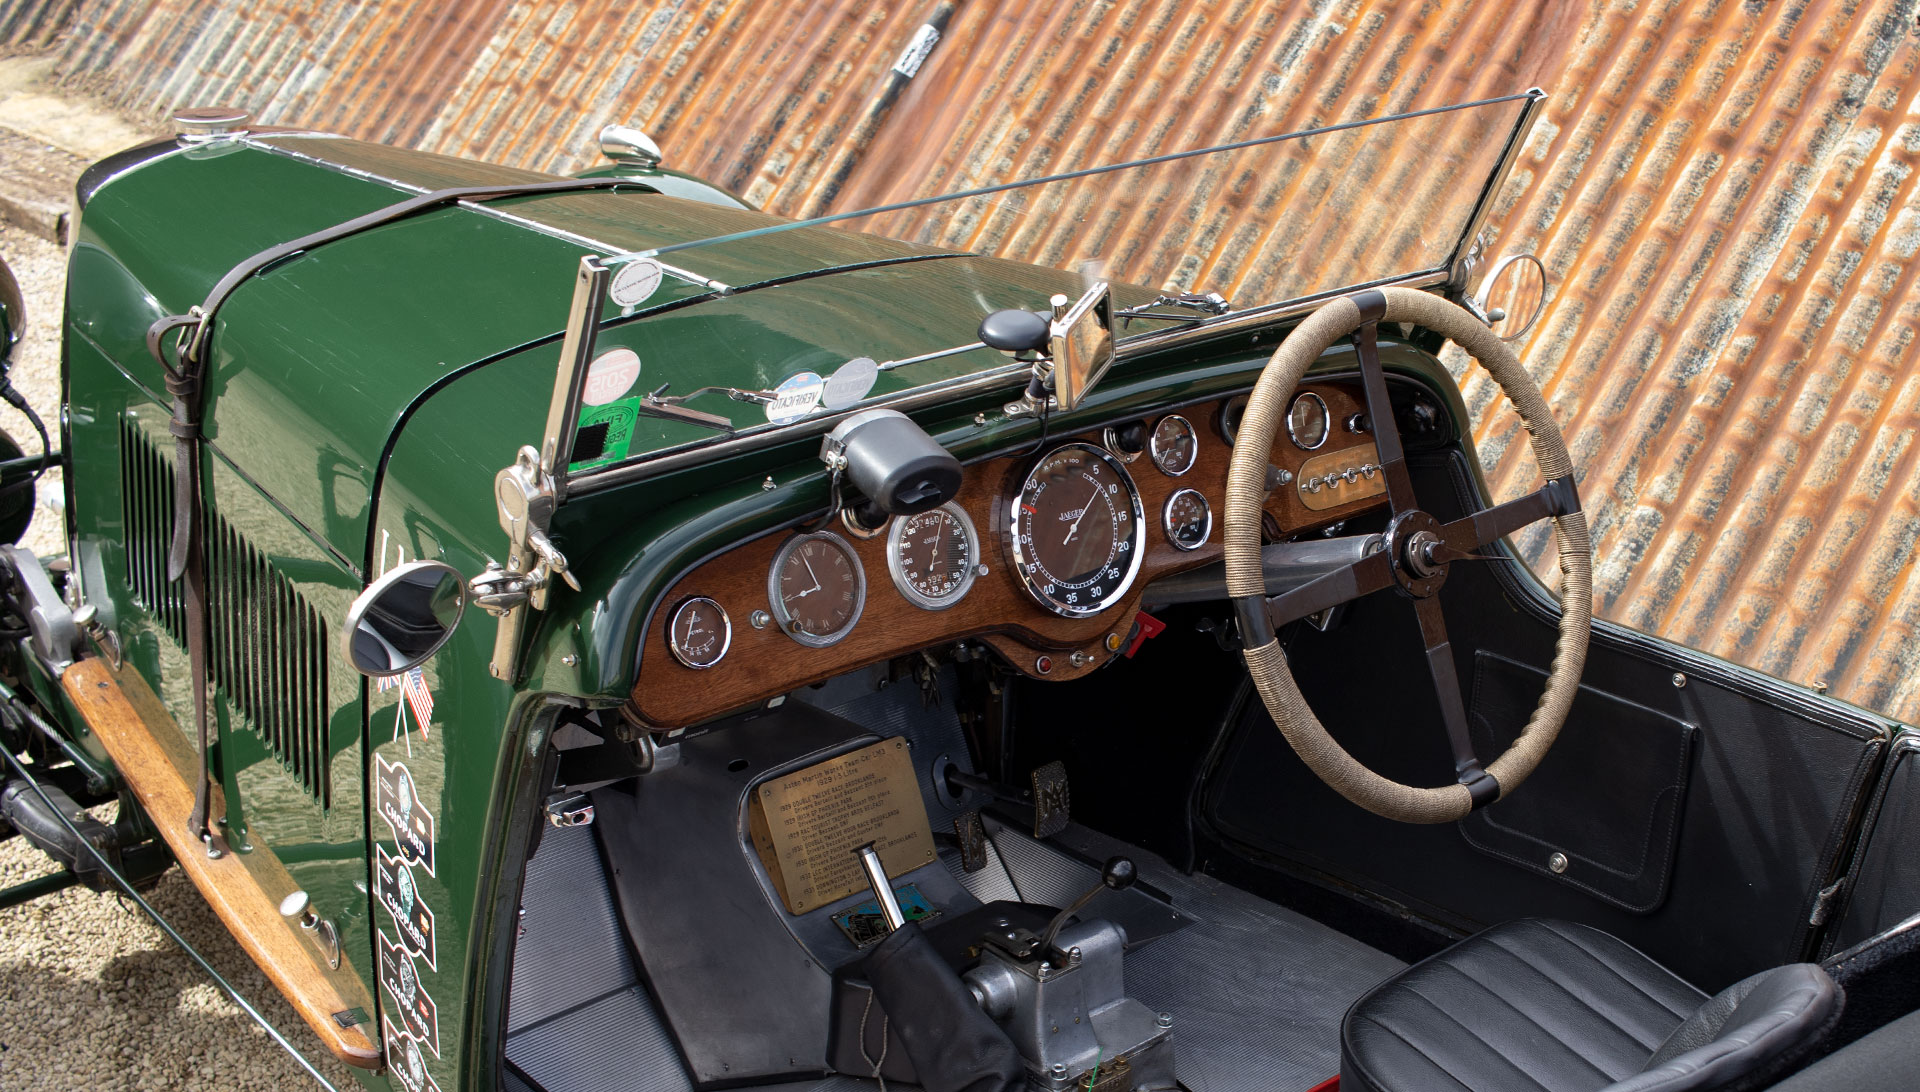 1929 Aston Martin Works Team Car - LM3 - For Sale at The Classic Motor Hub